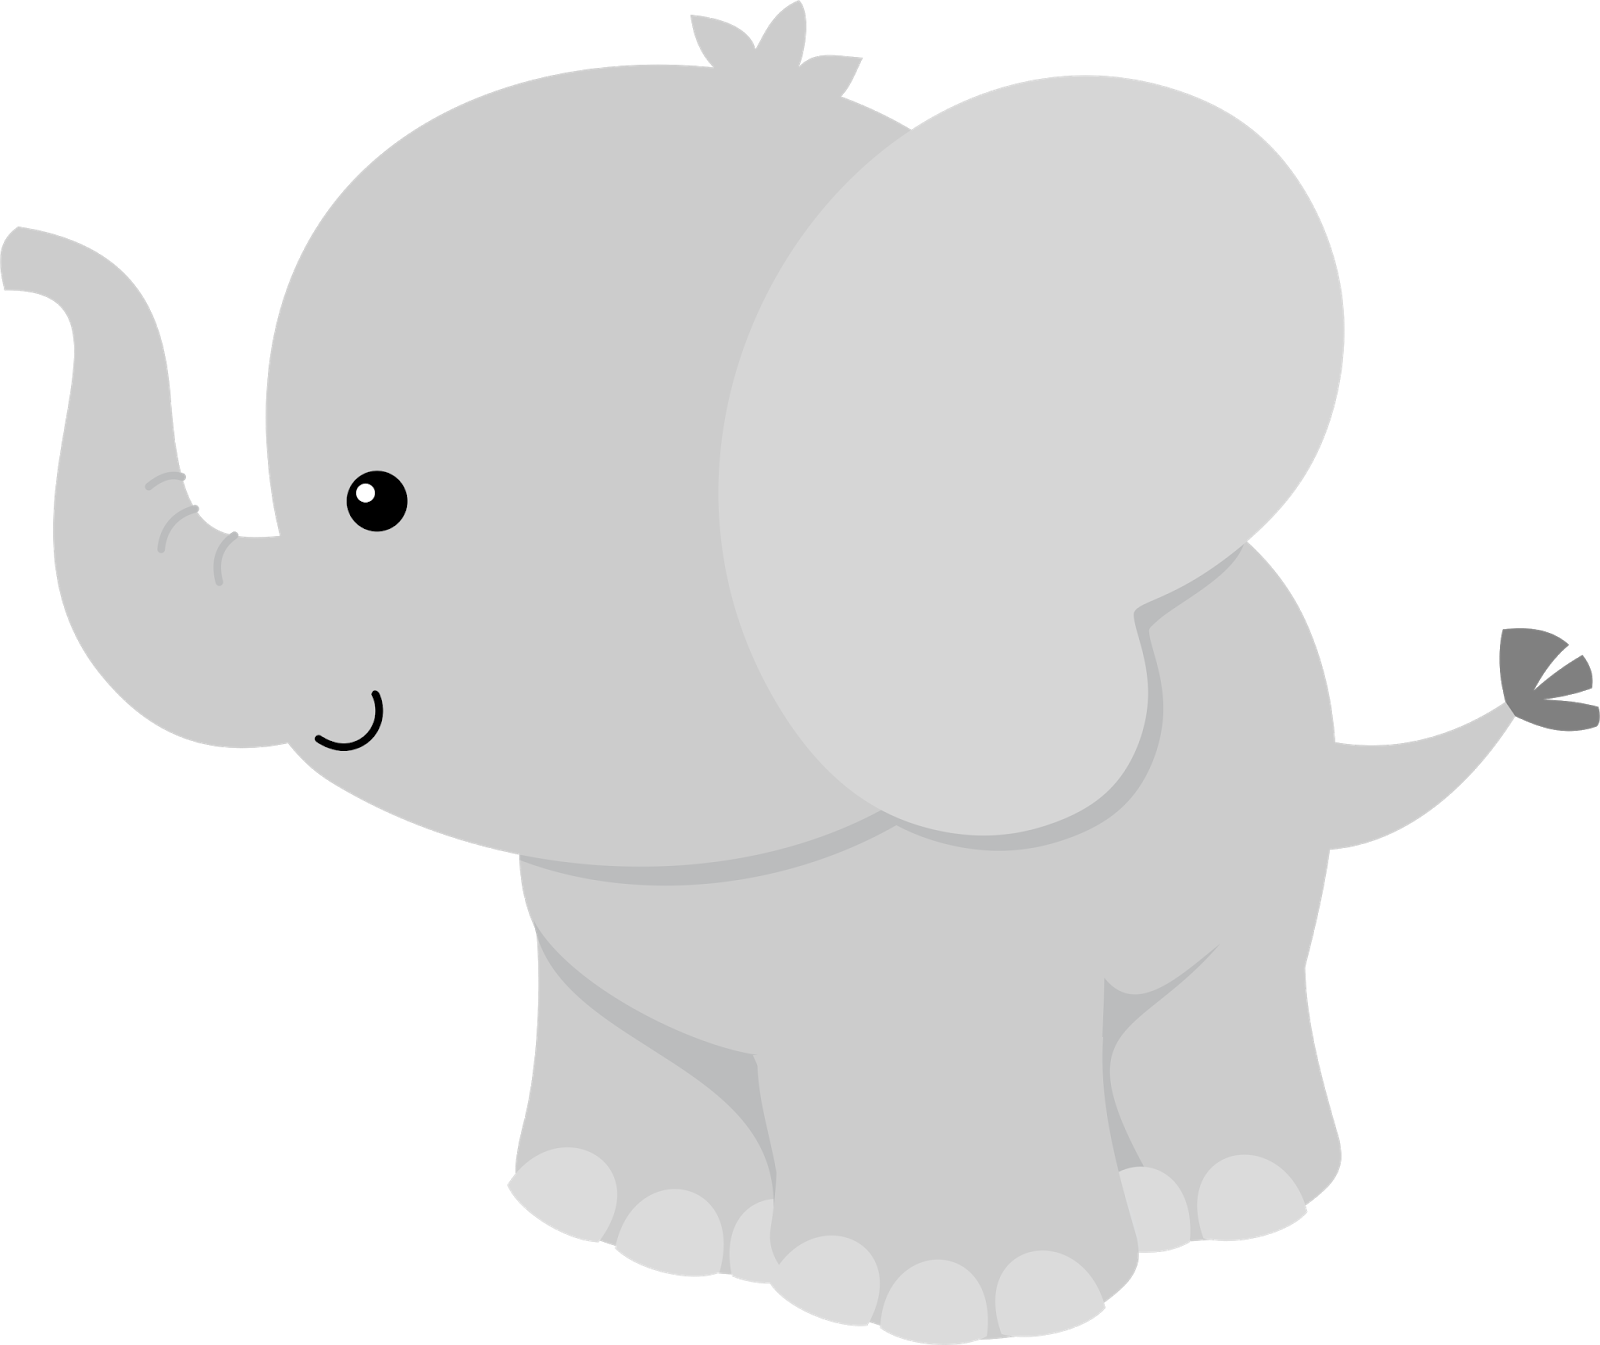 Jungle baby png p. Tree clipart elephant